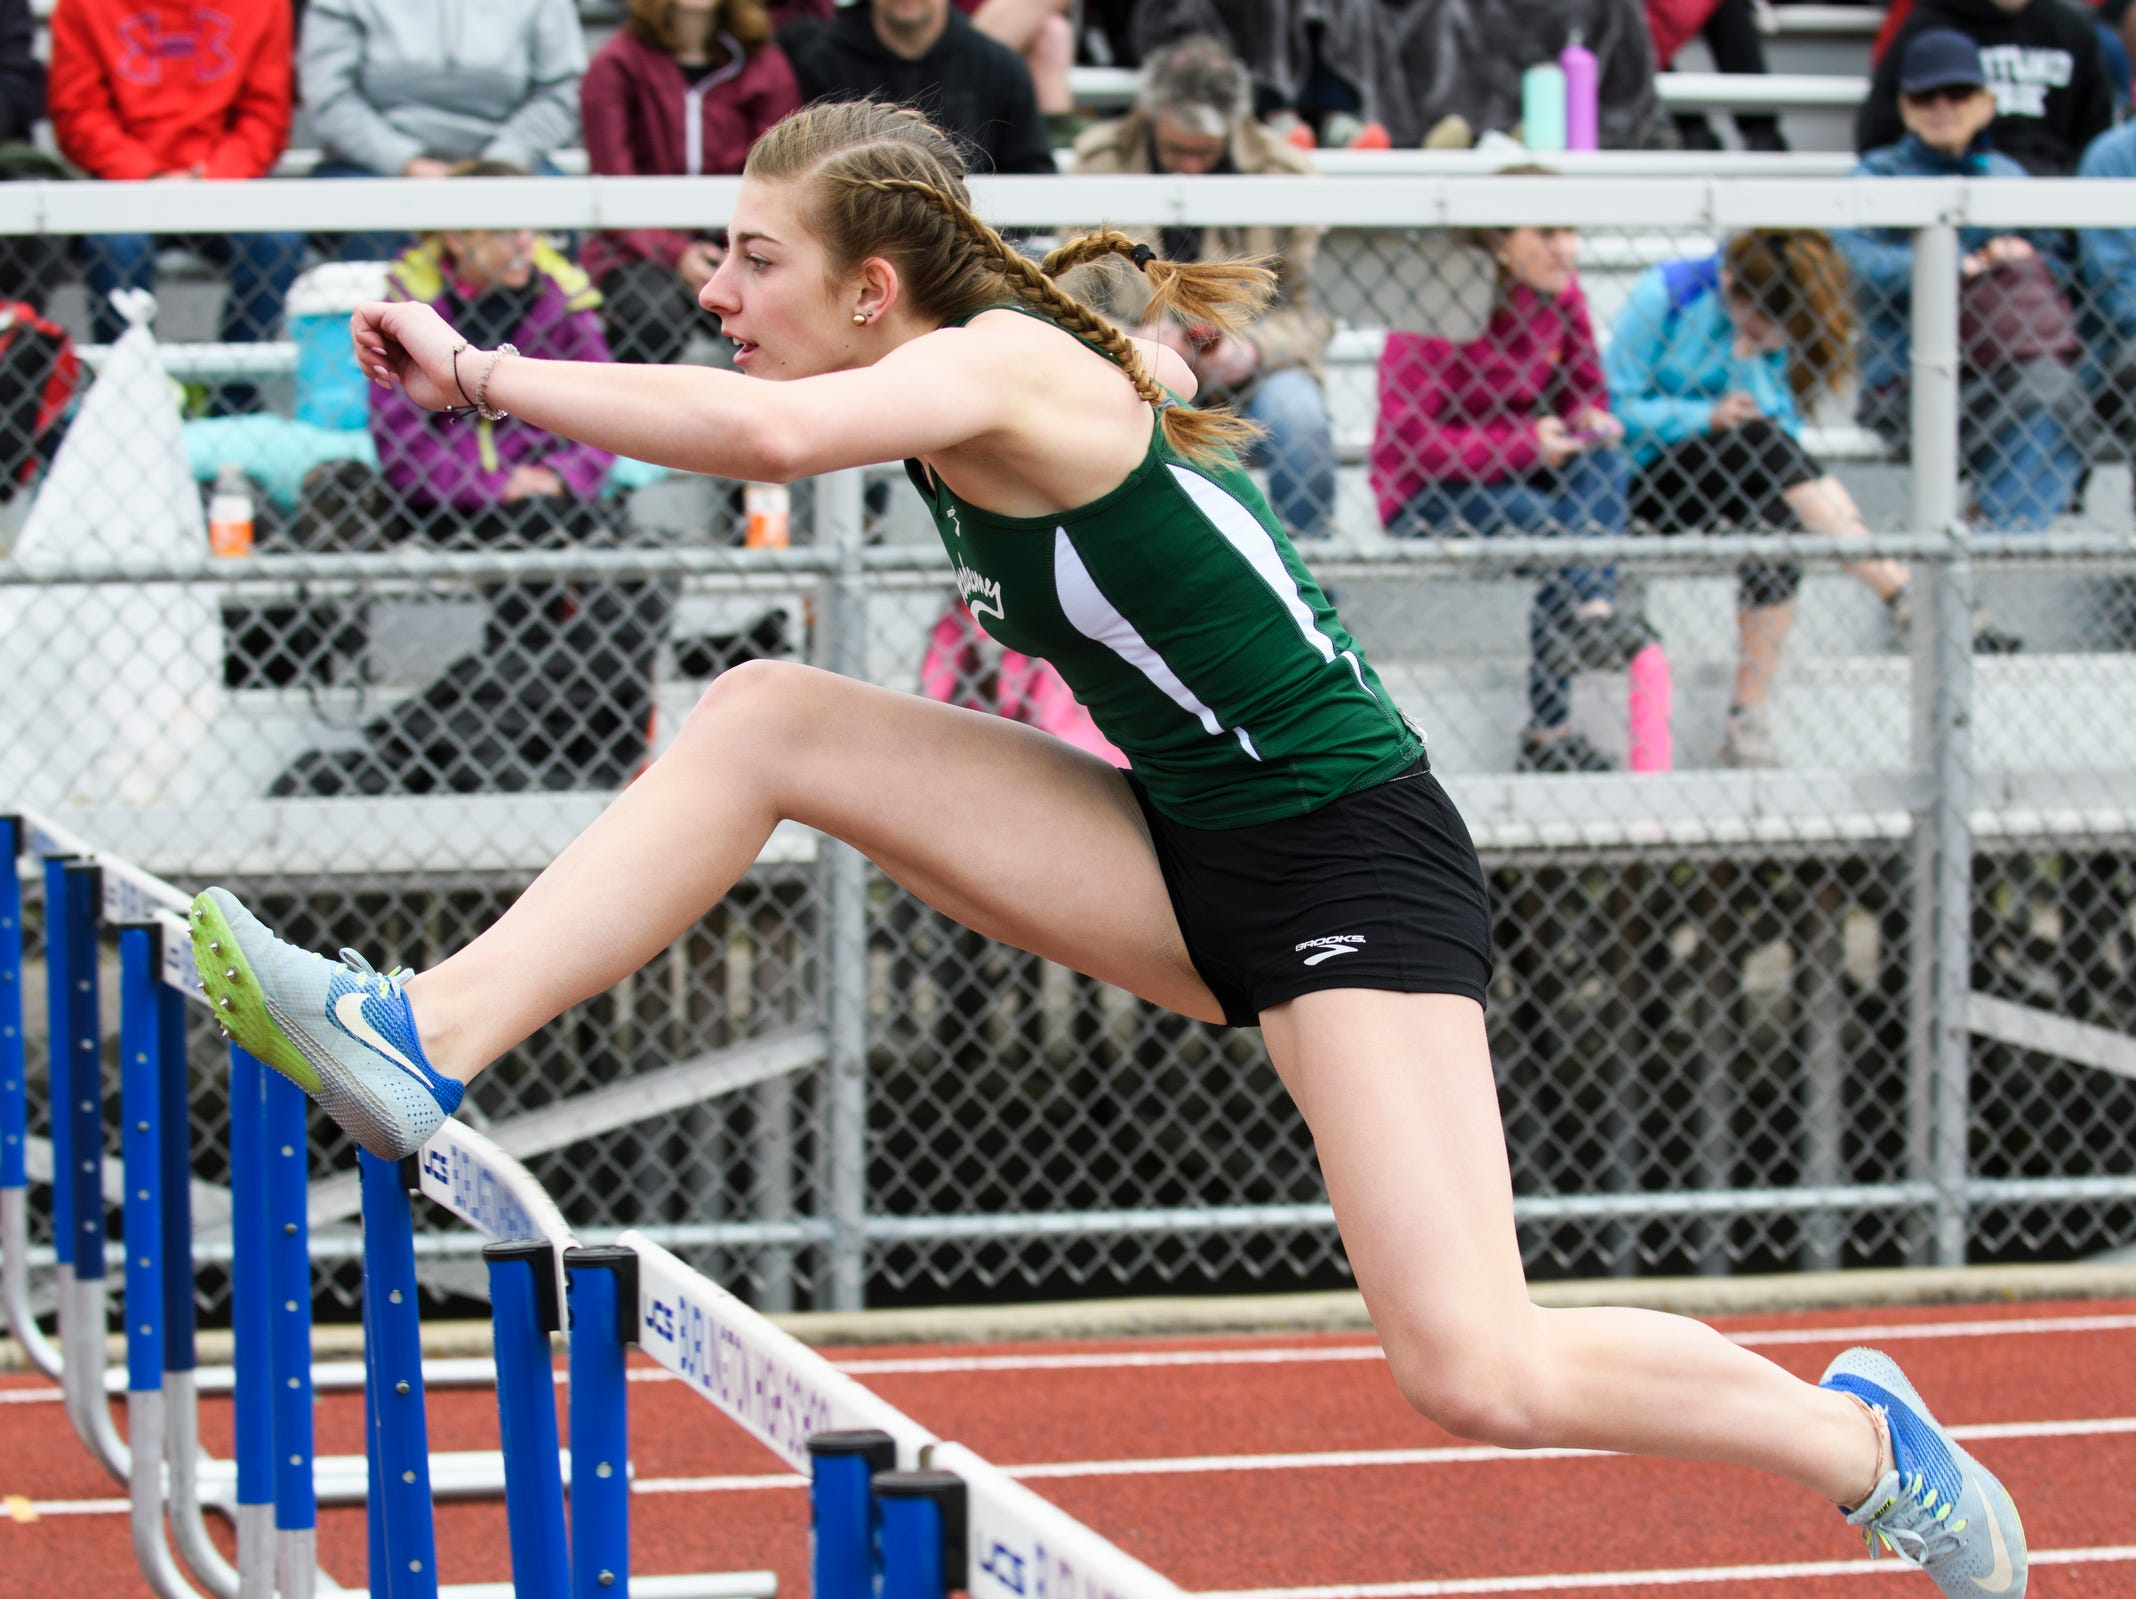 St. Johnsbury's Hannah Davis competes in the 100m hurdles during the Burlington Invitational high school track and field meet at Buck Hard Field on Saturday May 11, 2019 in Burlington, Vermont.